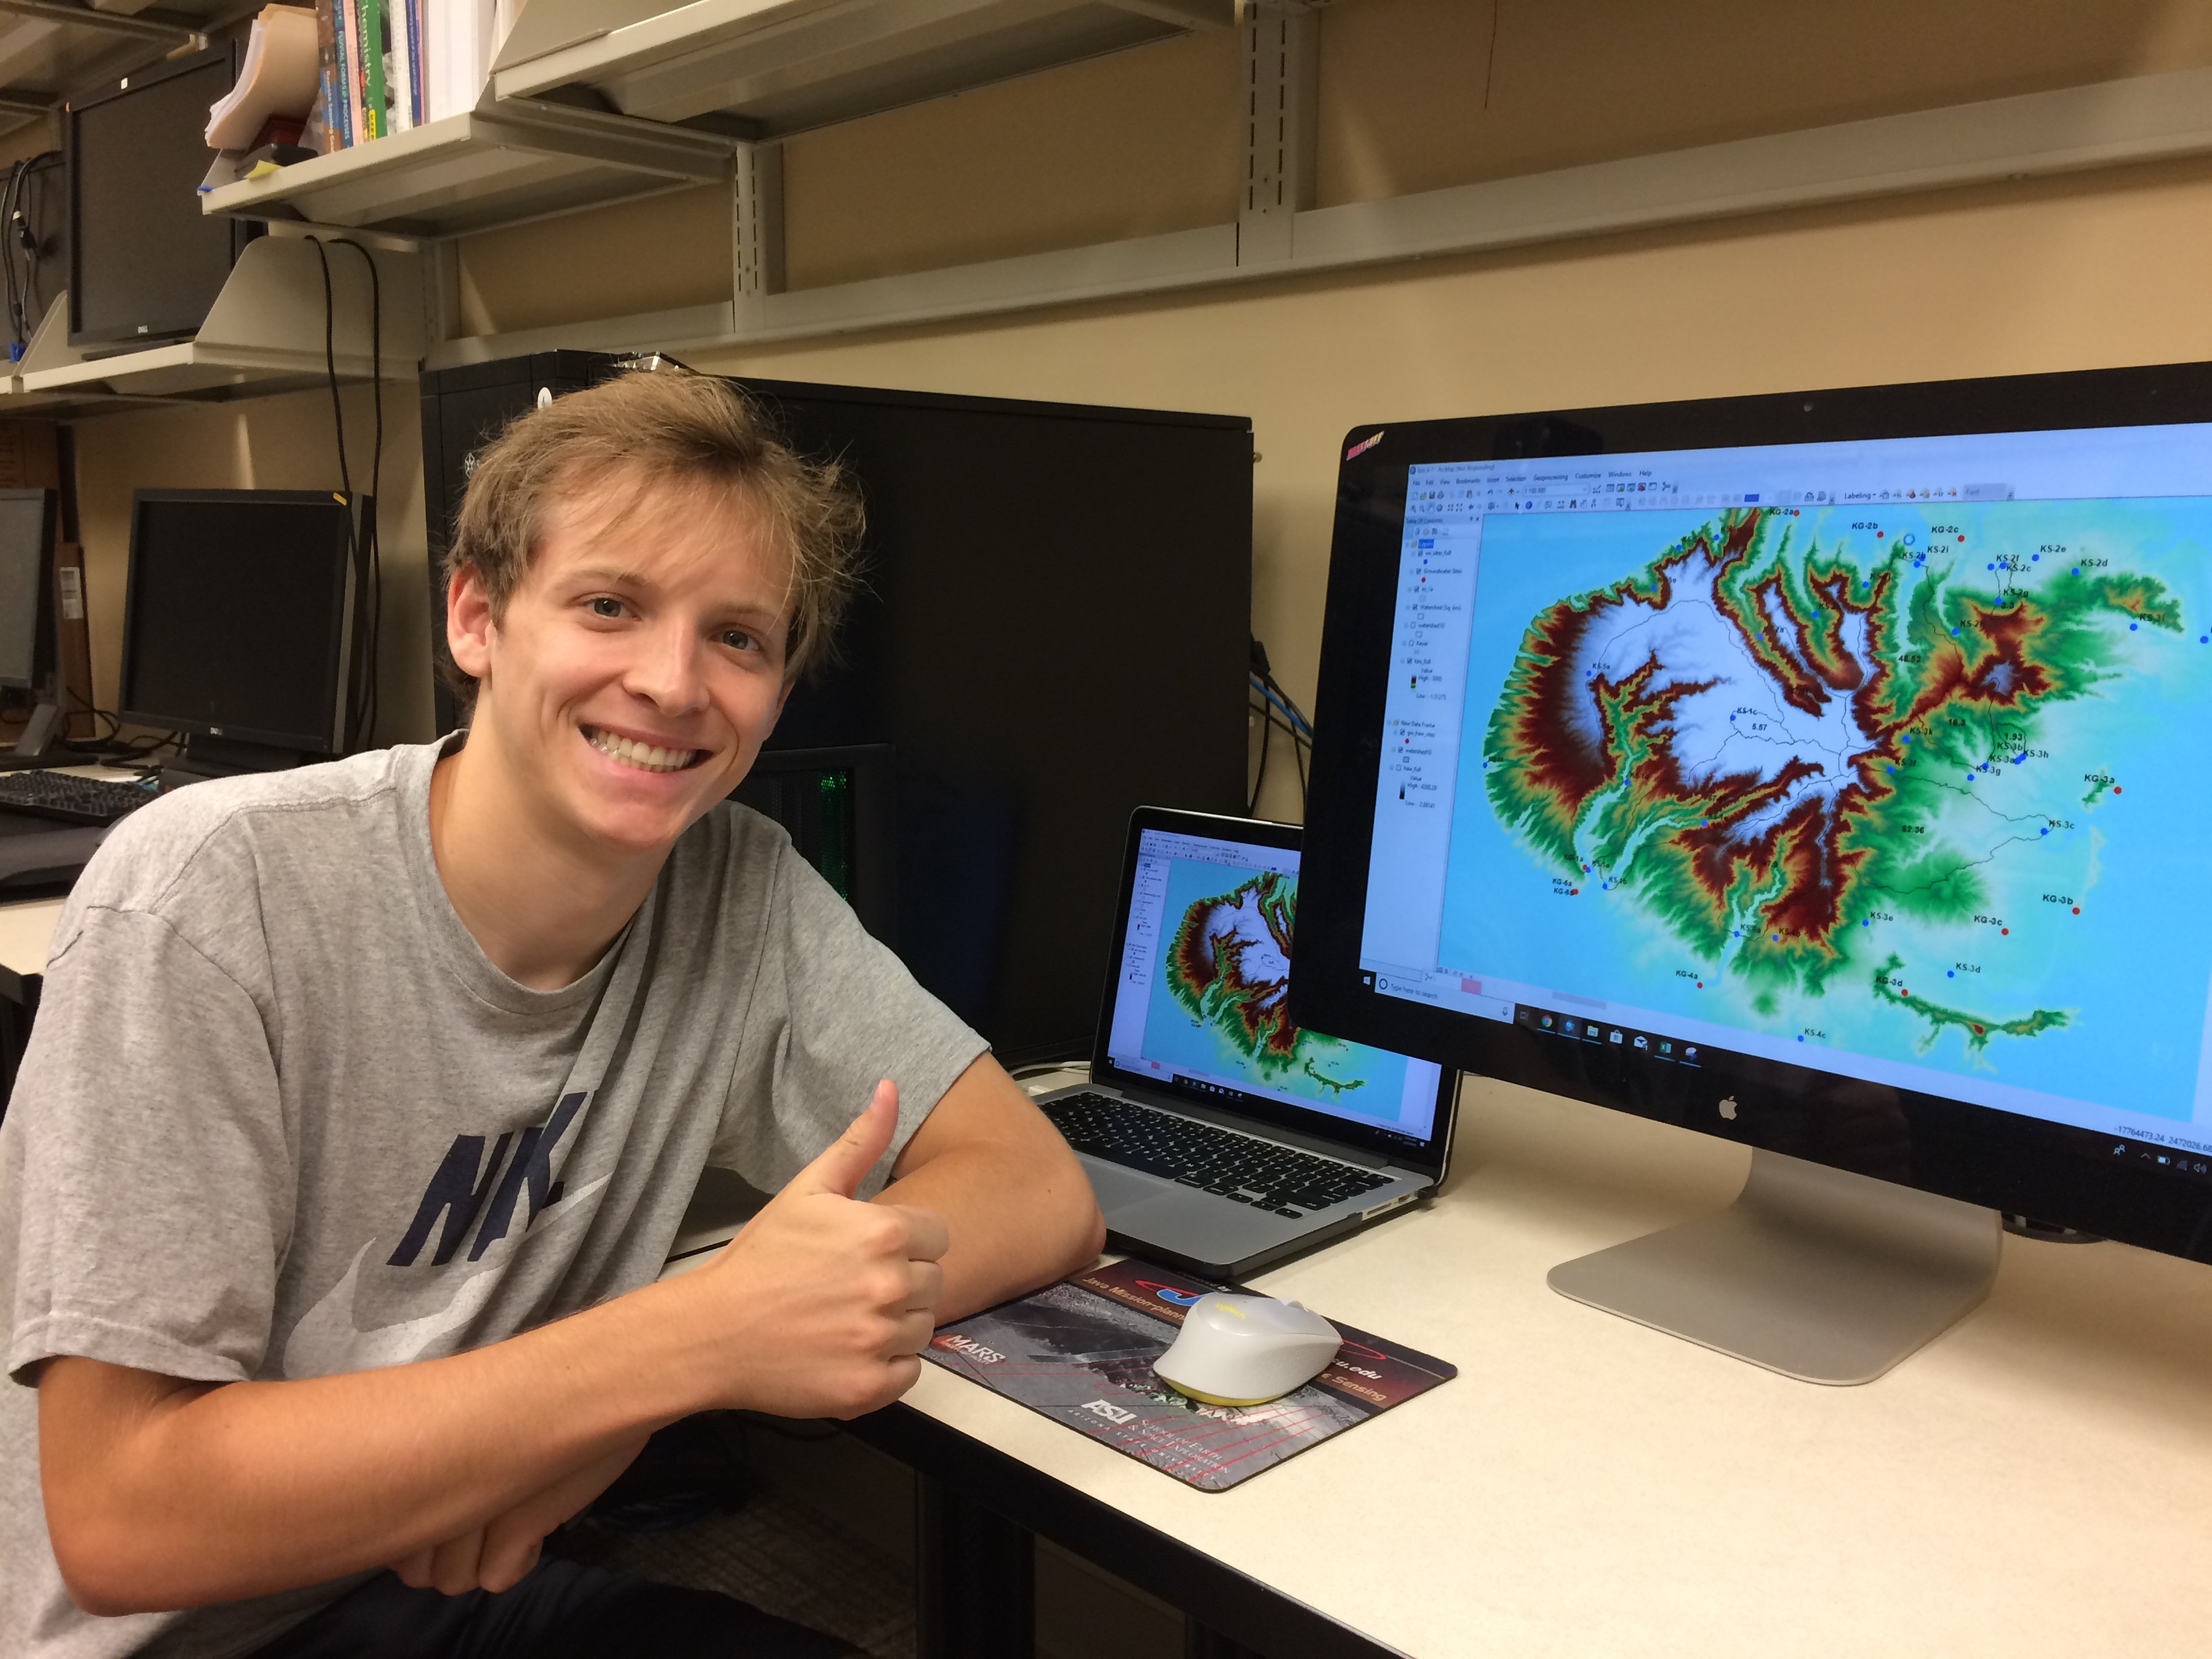 Warren Ehrenfried - Undergraduate Researcher